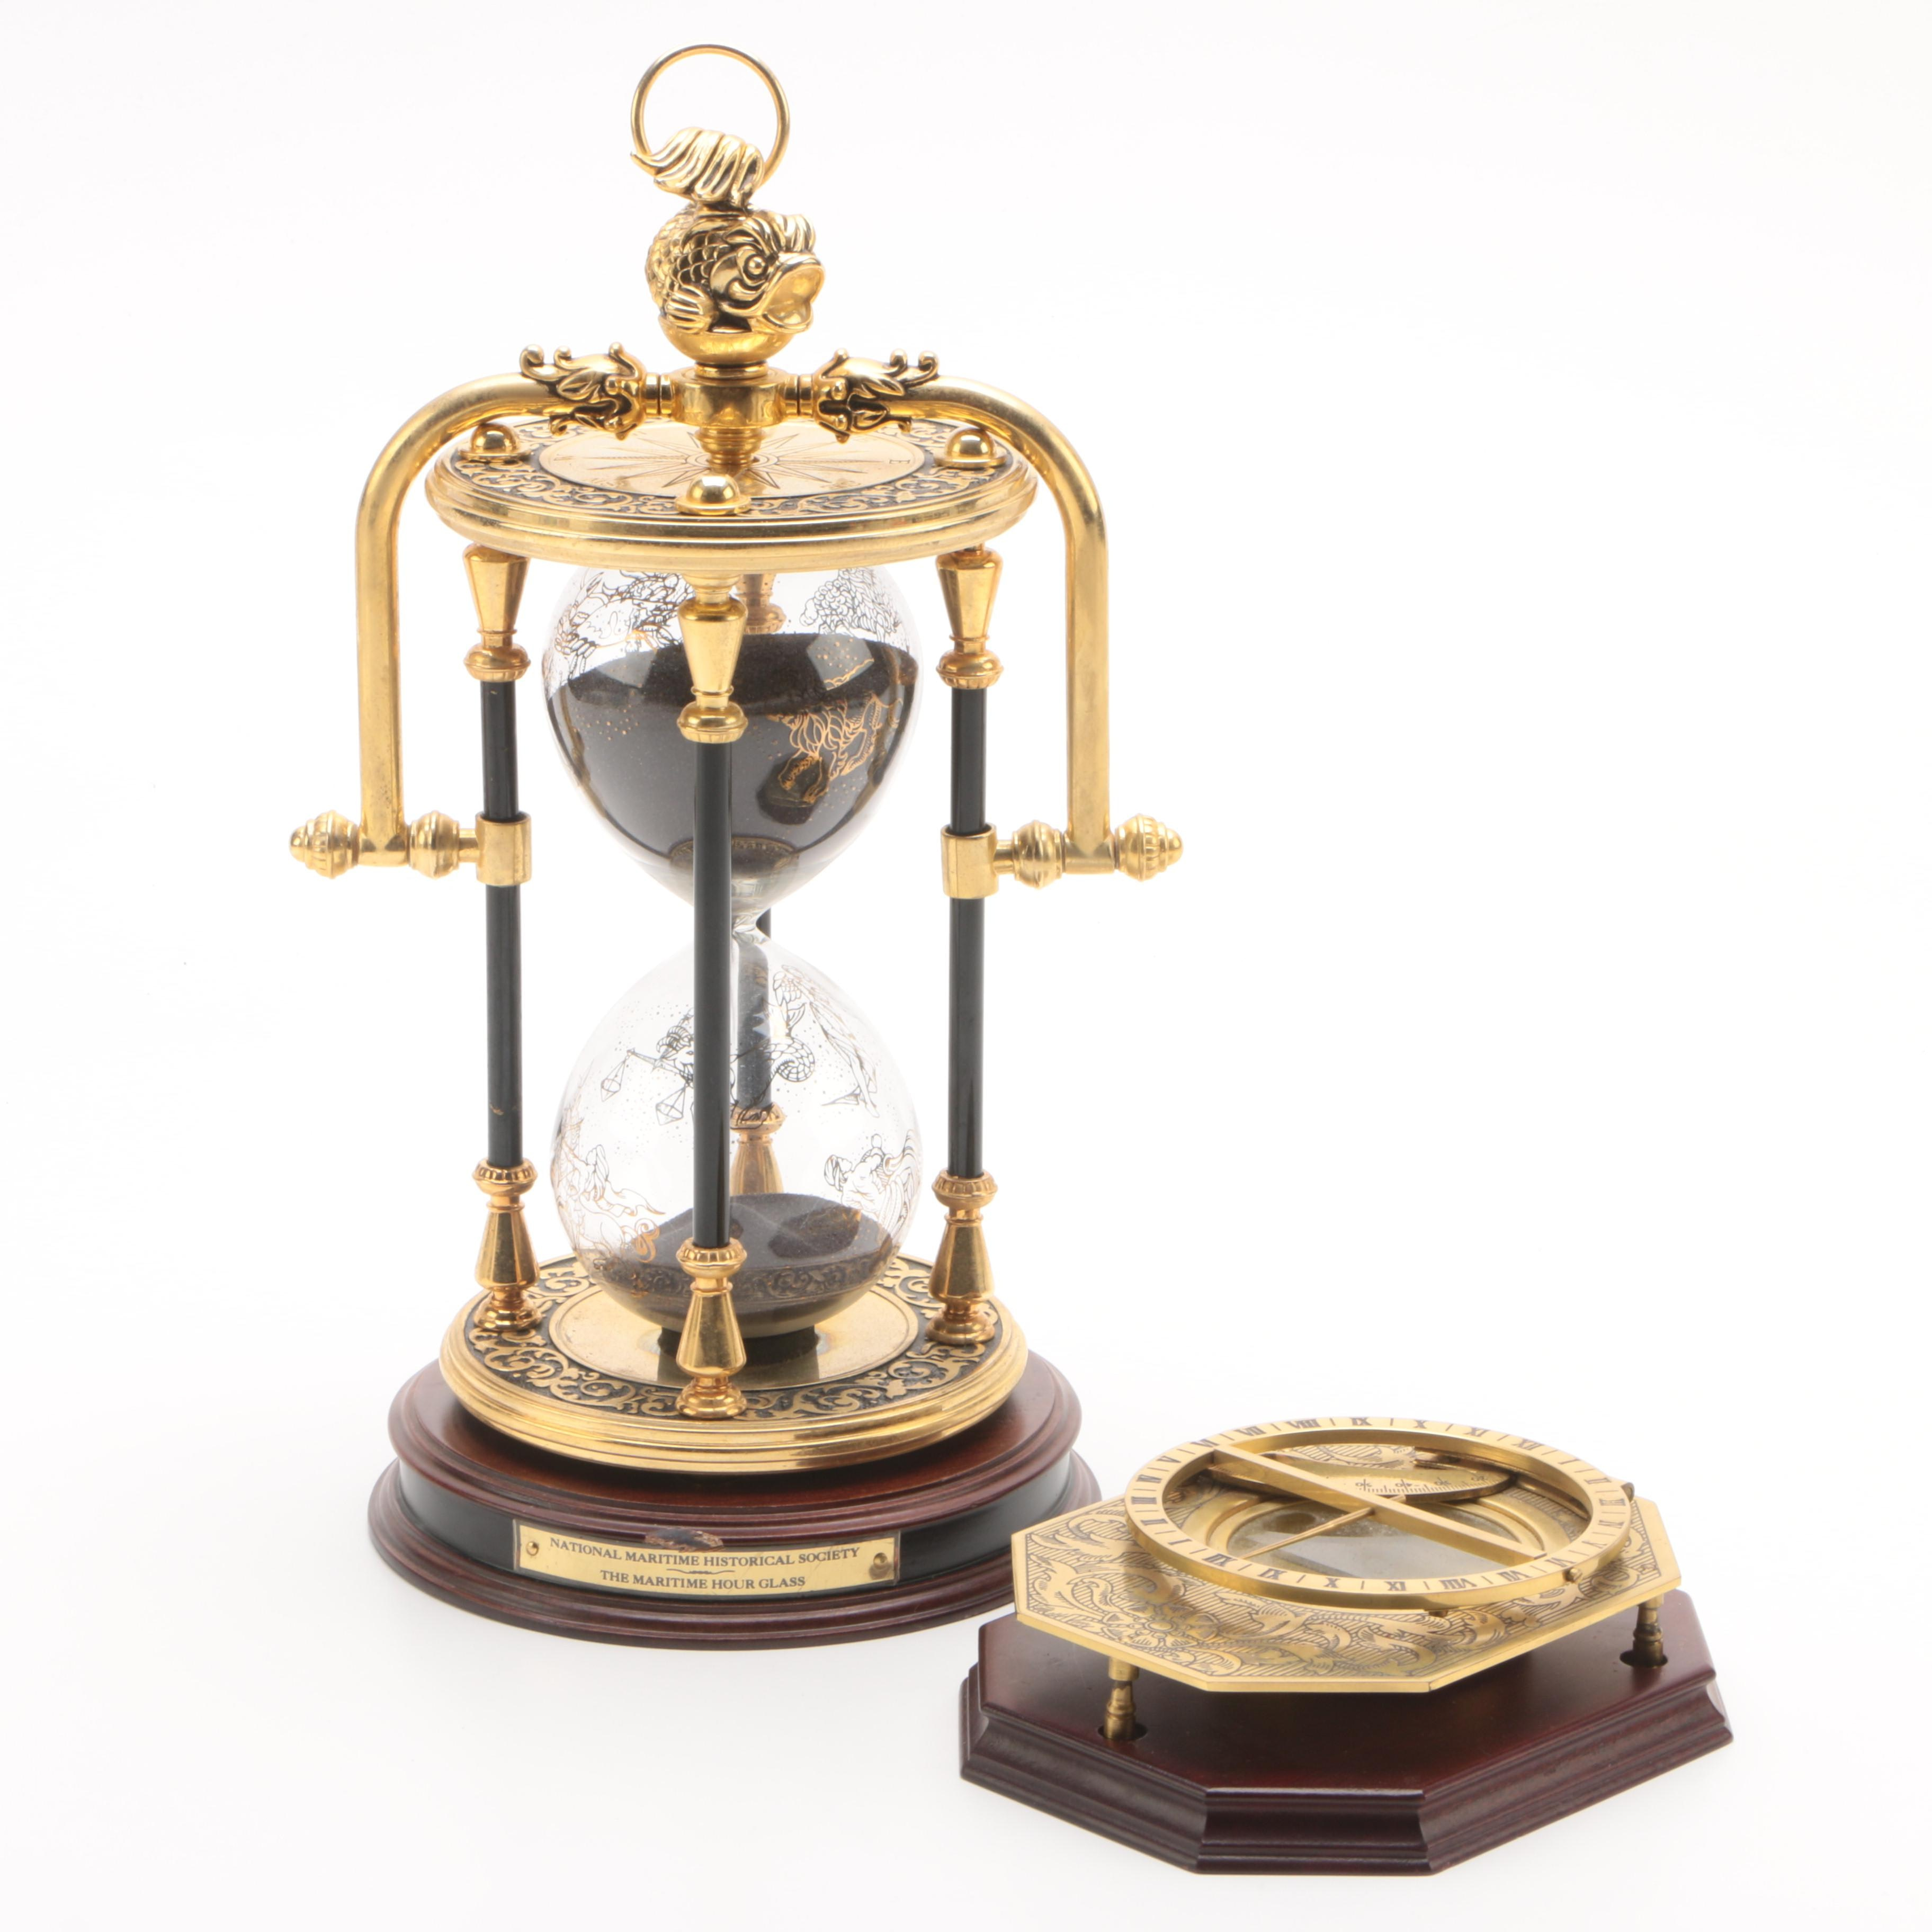 The Franklin Mint Universal Sundial and The Maritime Hour Glass